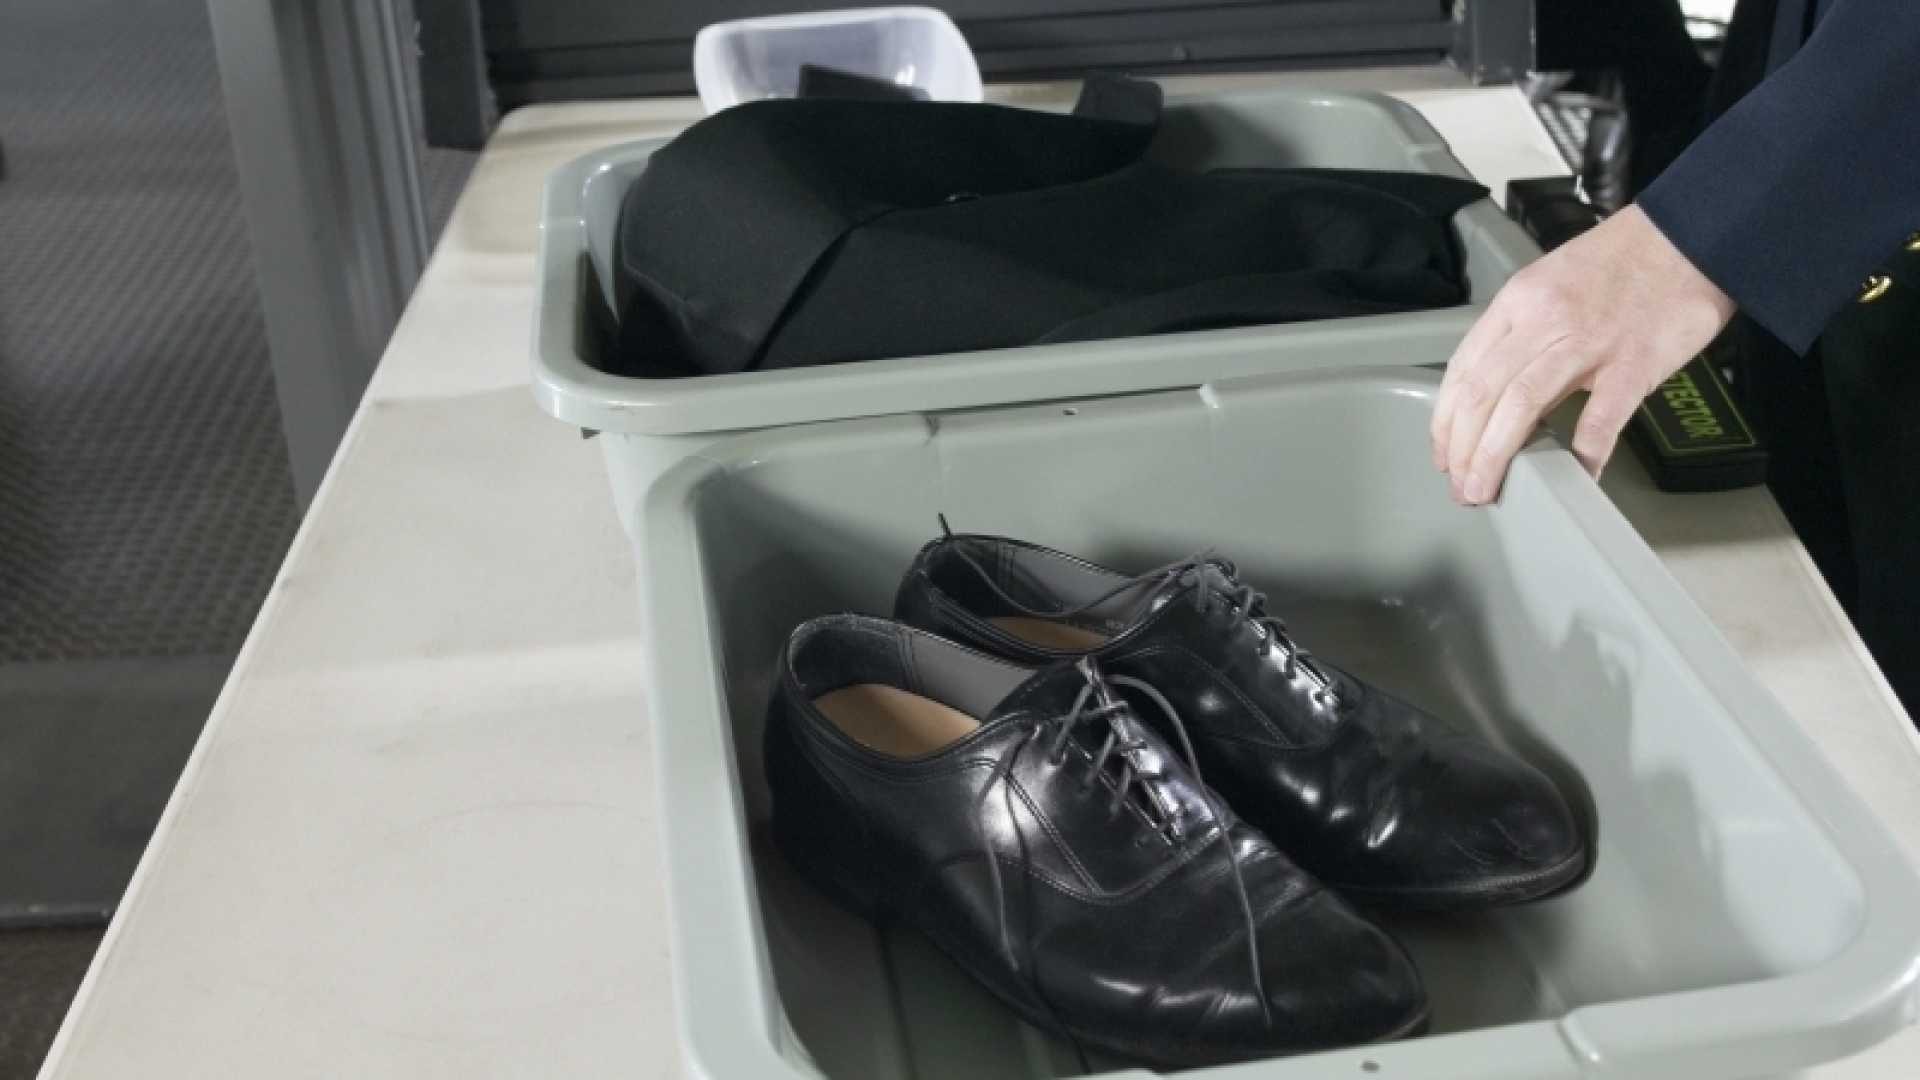 9 Tips to Zoom Through Airport Security